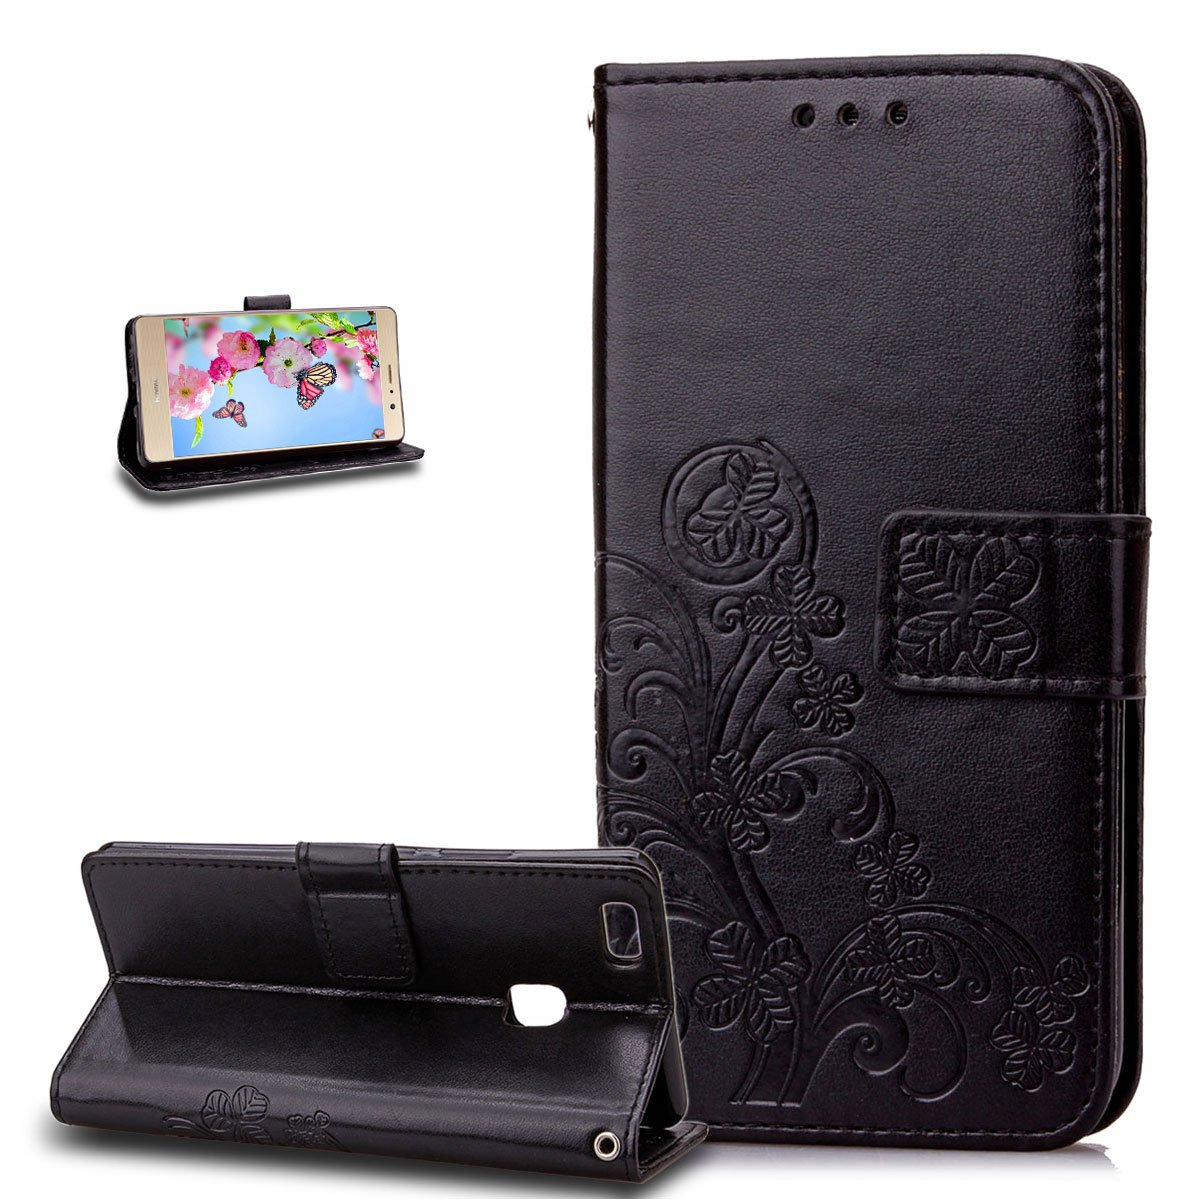 Huawei P9 Lite Case,Wallet Case for Huawei P9 Lite,ikasus Embossing Clover Flower PU Leather Fold Wallet Pouch PU Leather Wallet Flip Stand Credit Card Holders Case Cover for Huawei P9 Lite,Purple